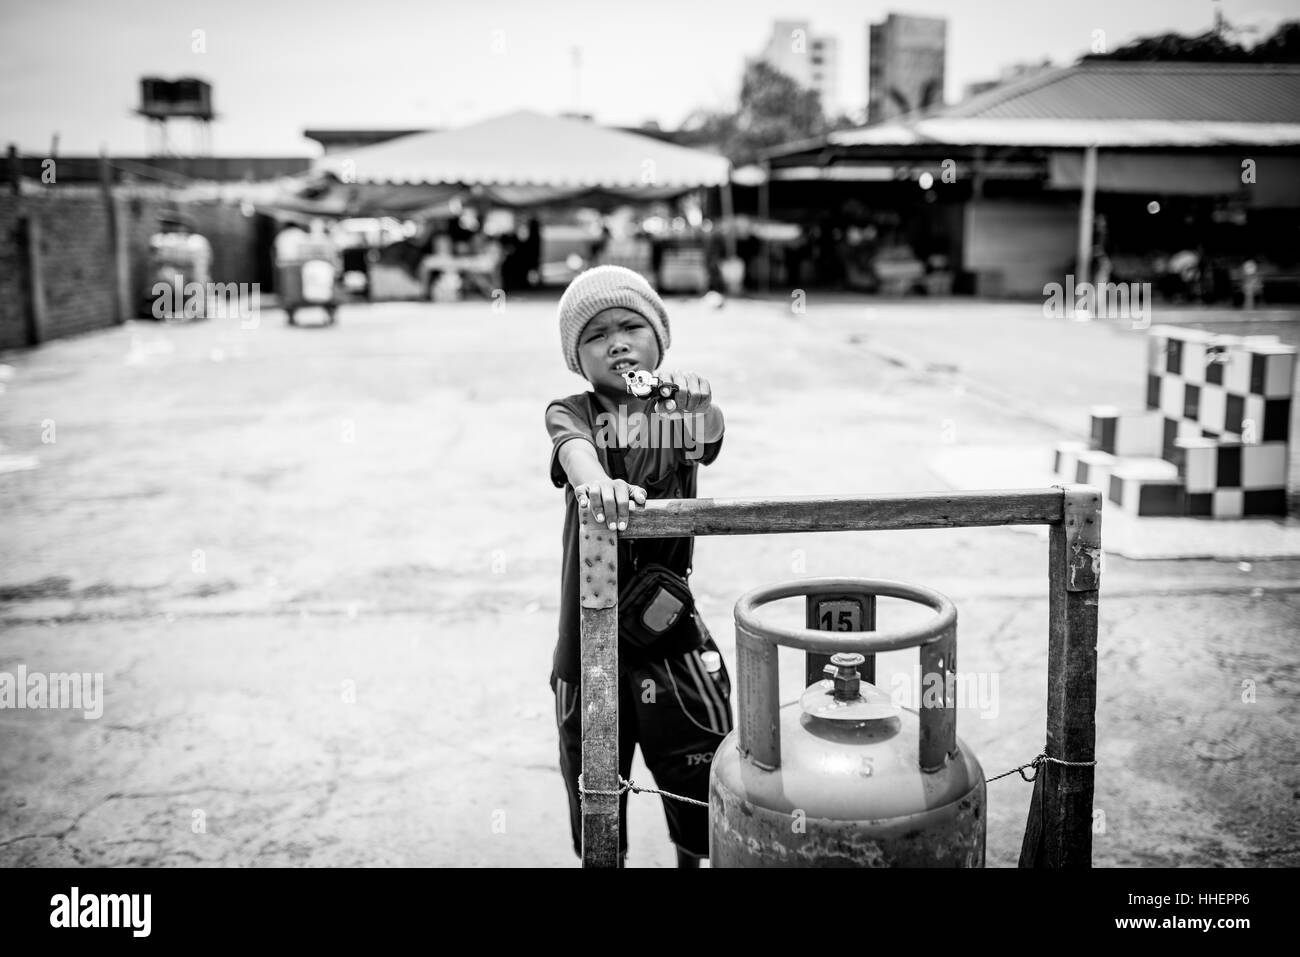 A young boy points a gun (assumed to be a toy) at me in Kota Kinabalu, Malaysia. - Stock Image